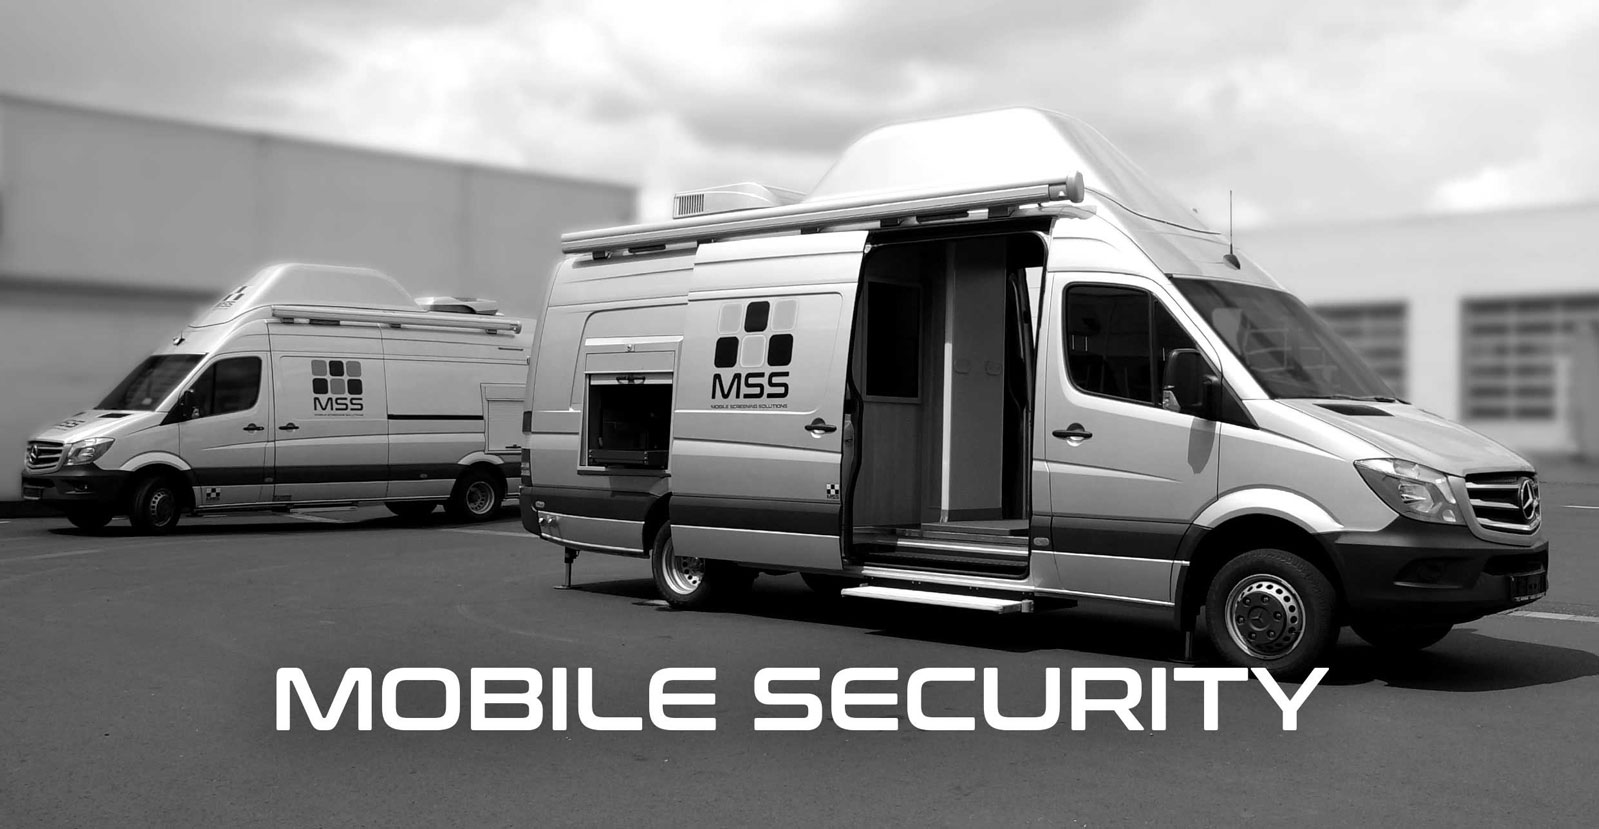 unival group | MOBILE SECURITY